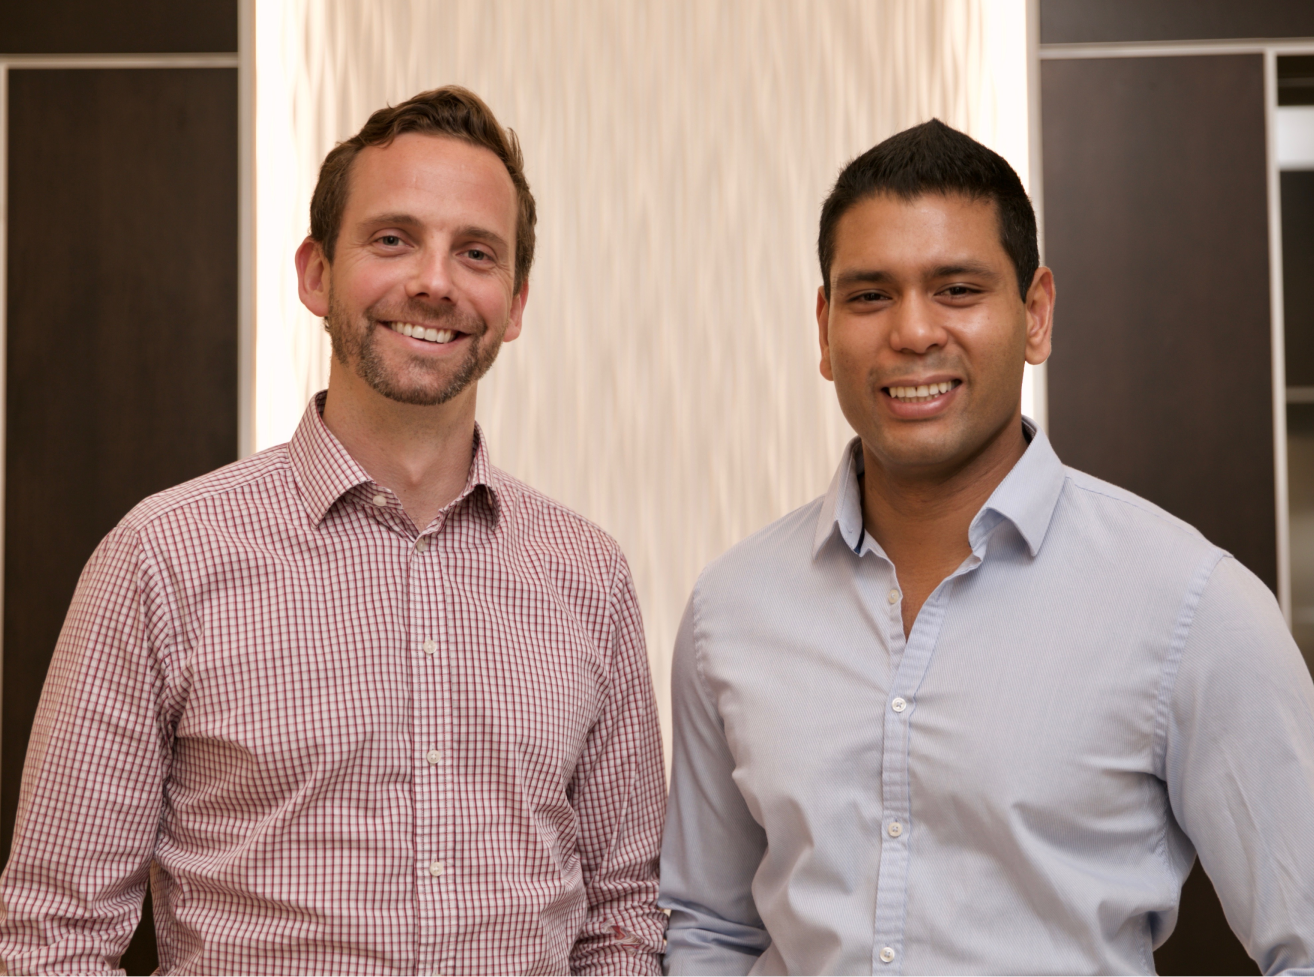 Prodigy Education Co-CEOs and Co-Founders, Alex Peters on the left and Rohan Mahimker on the right.